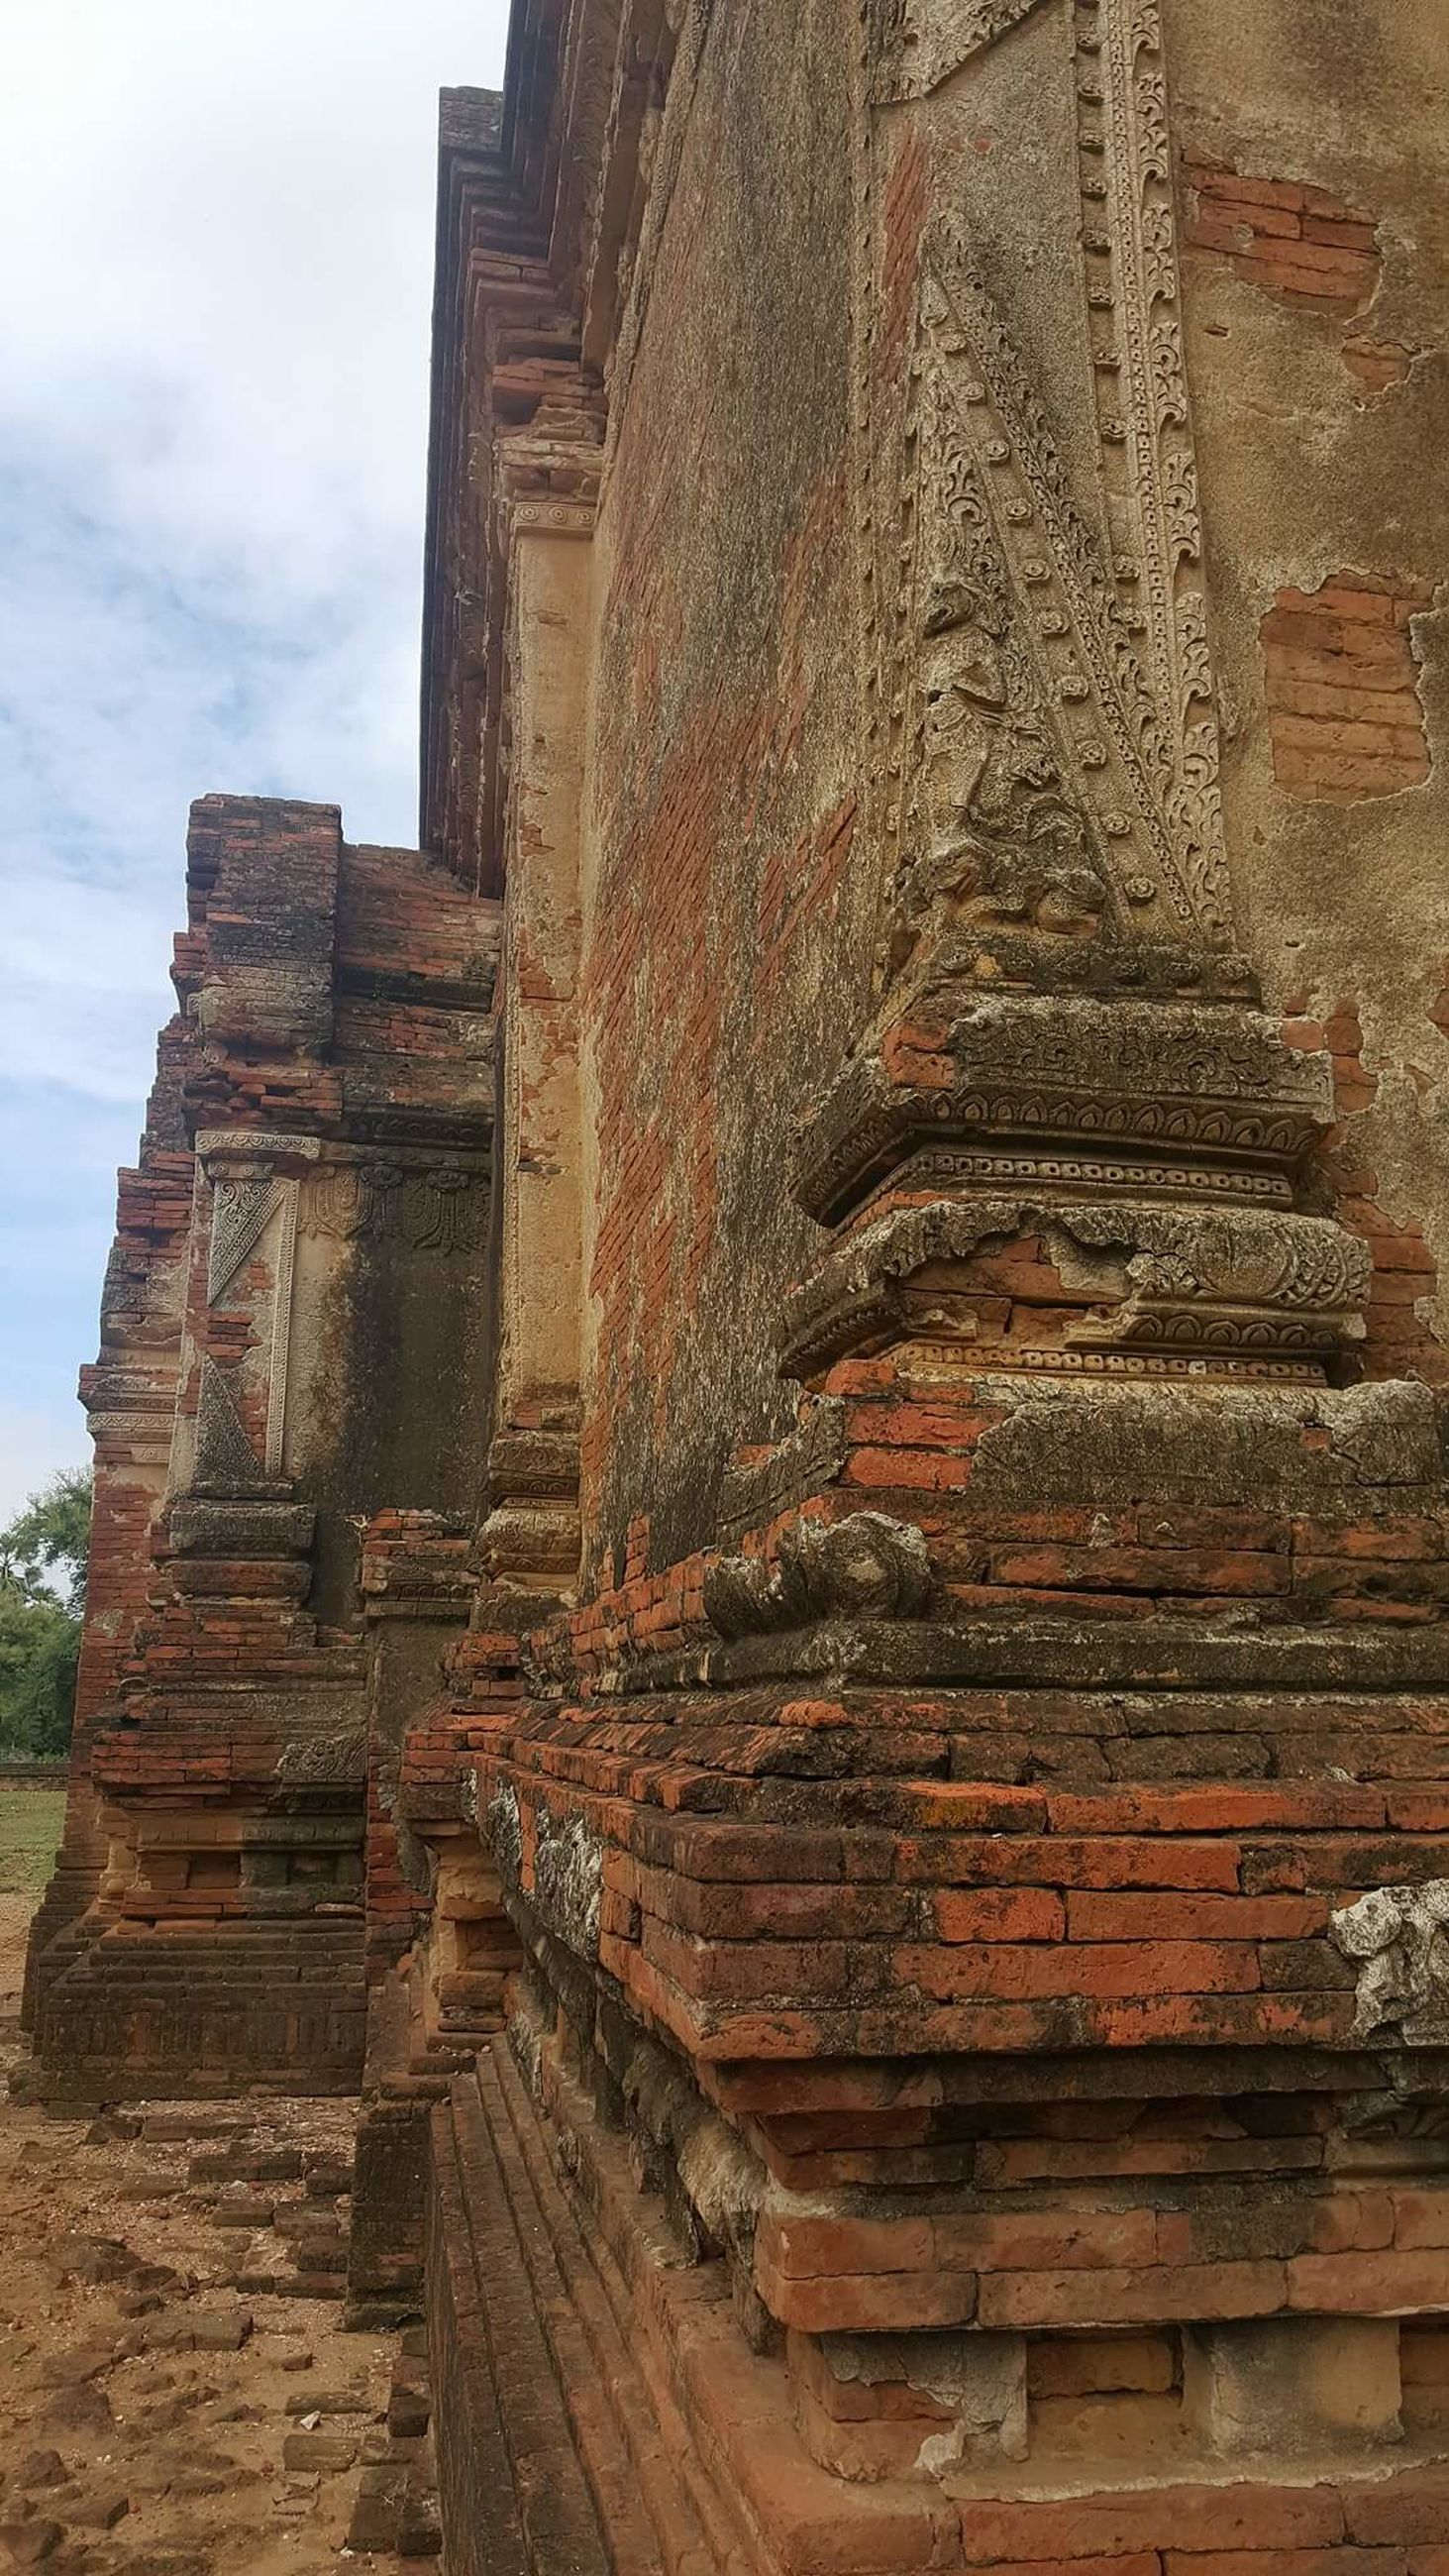 religion, architecture, place of worship, spirituality, history, built structure, old ruin, building exterior, ancient civilization, travel destinations, no people, day, outdoors, sky